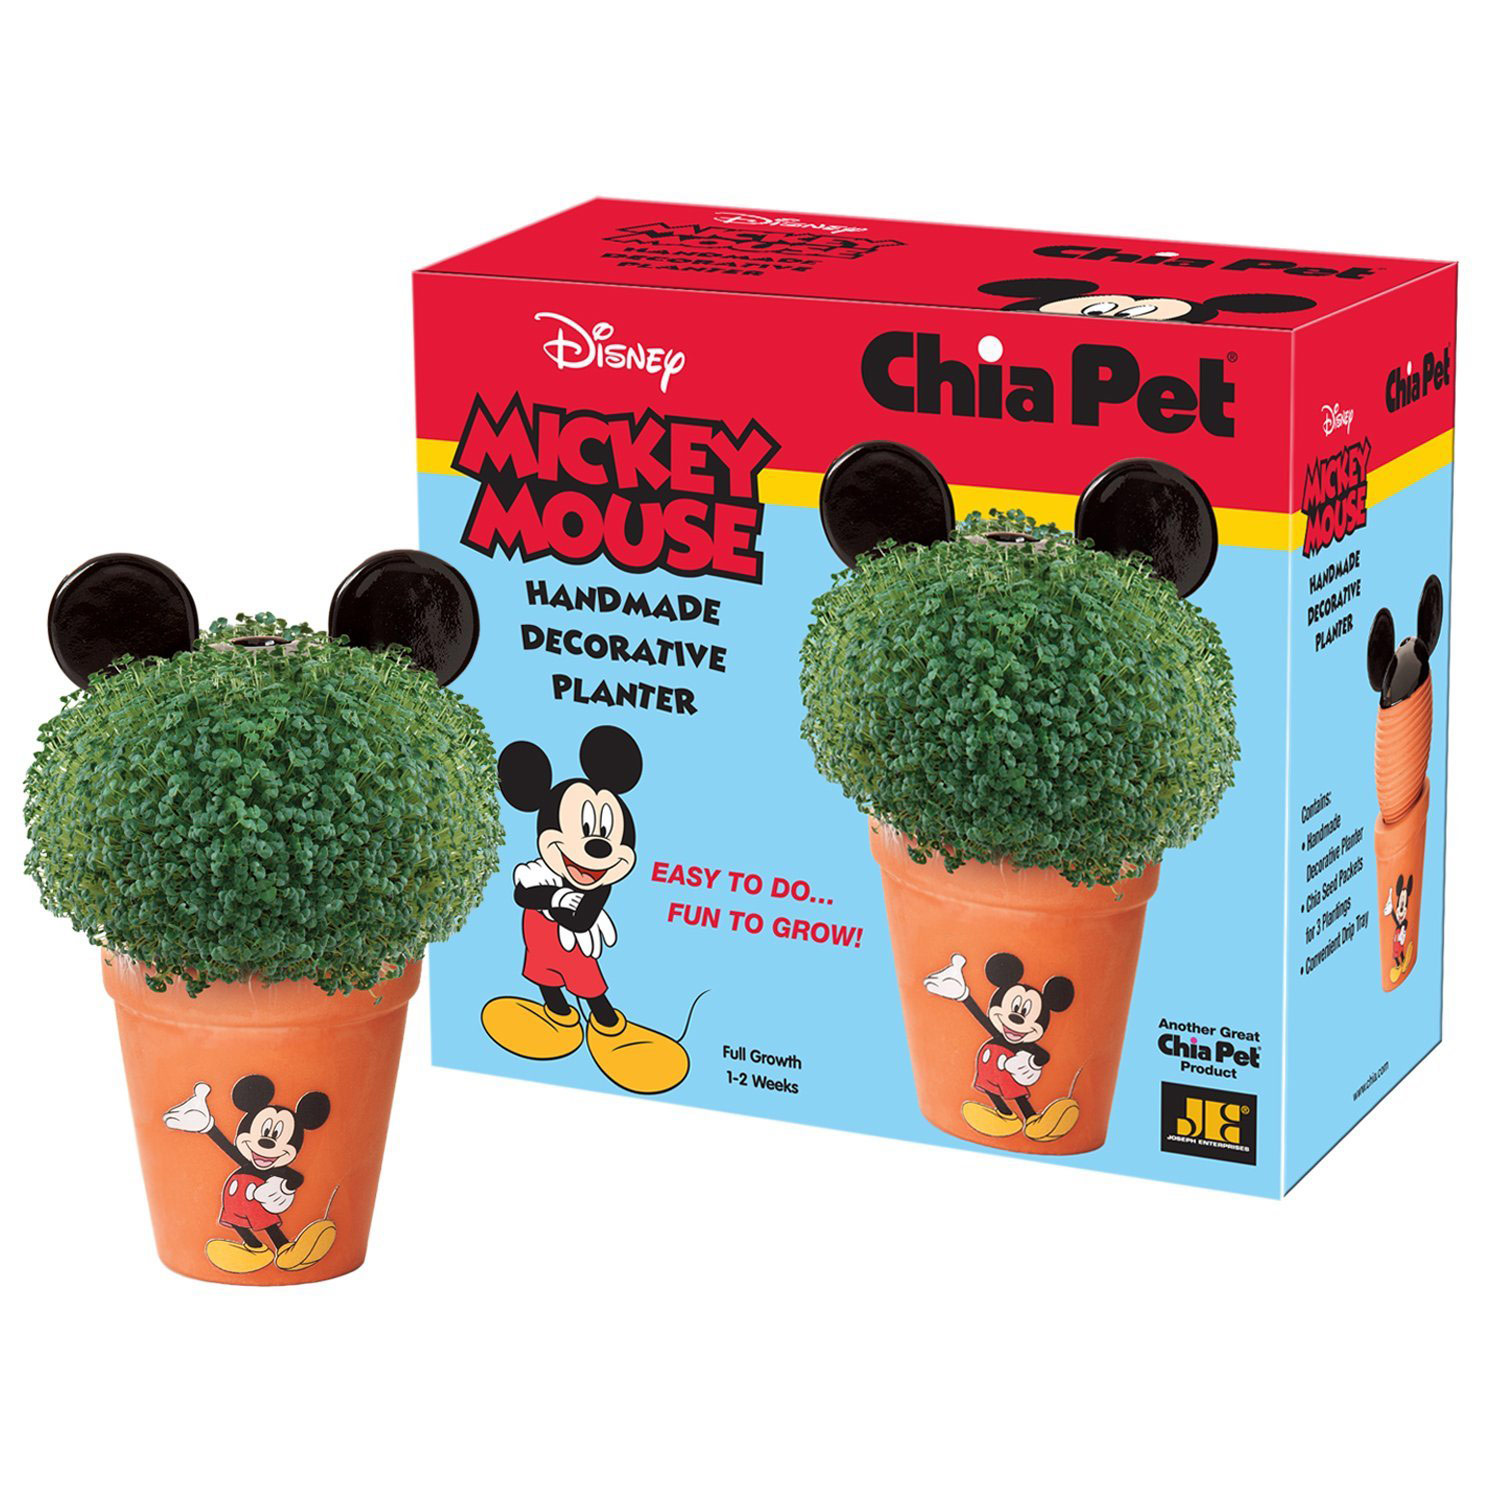 Mickey Mouse Chia Pet Handmade Decorative Planter Easy To Grow